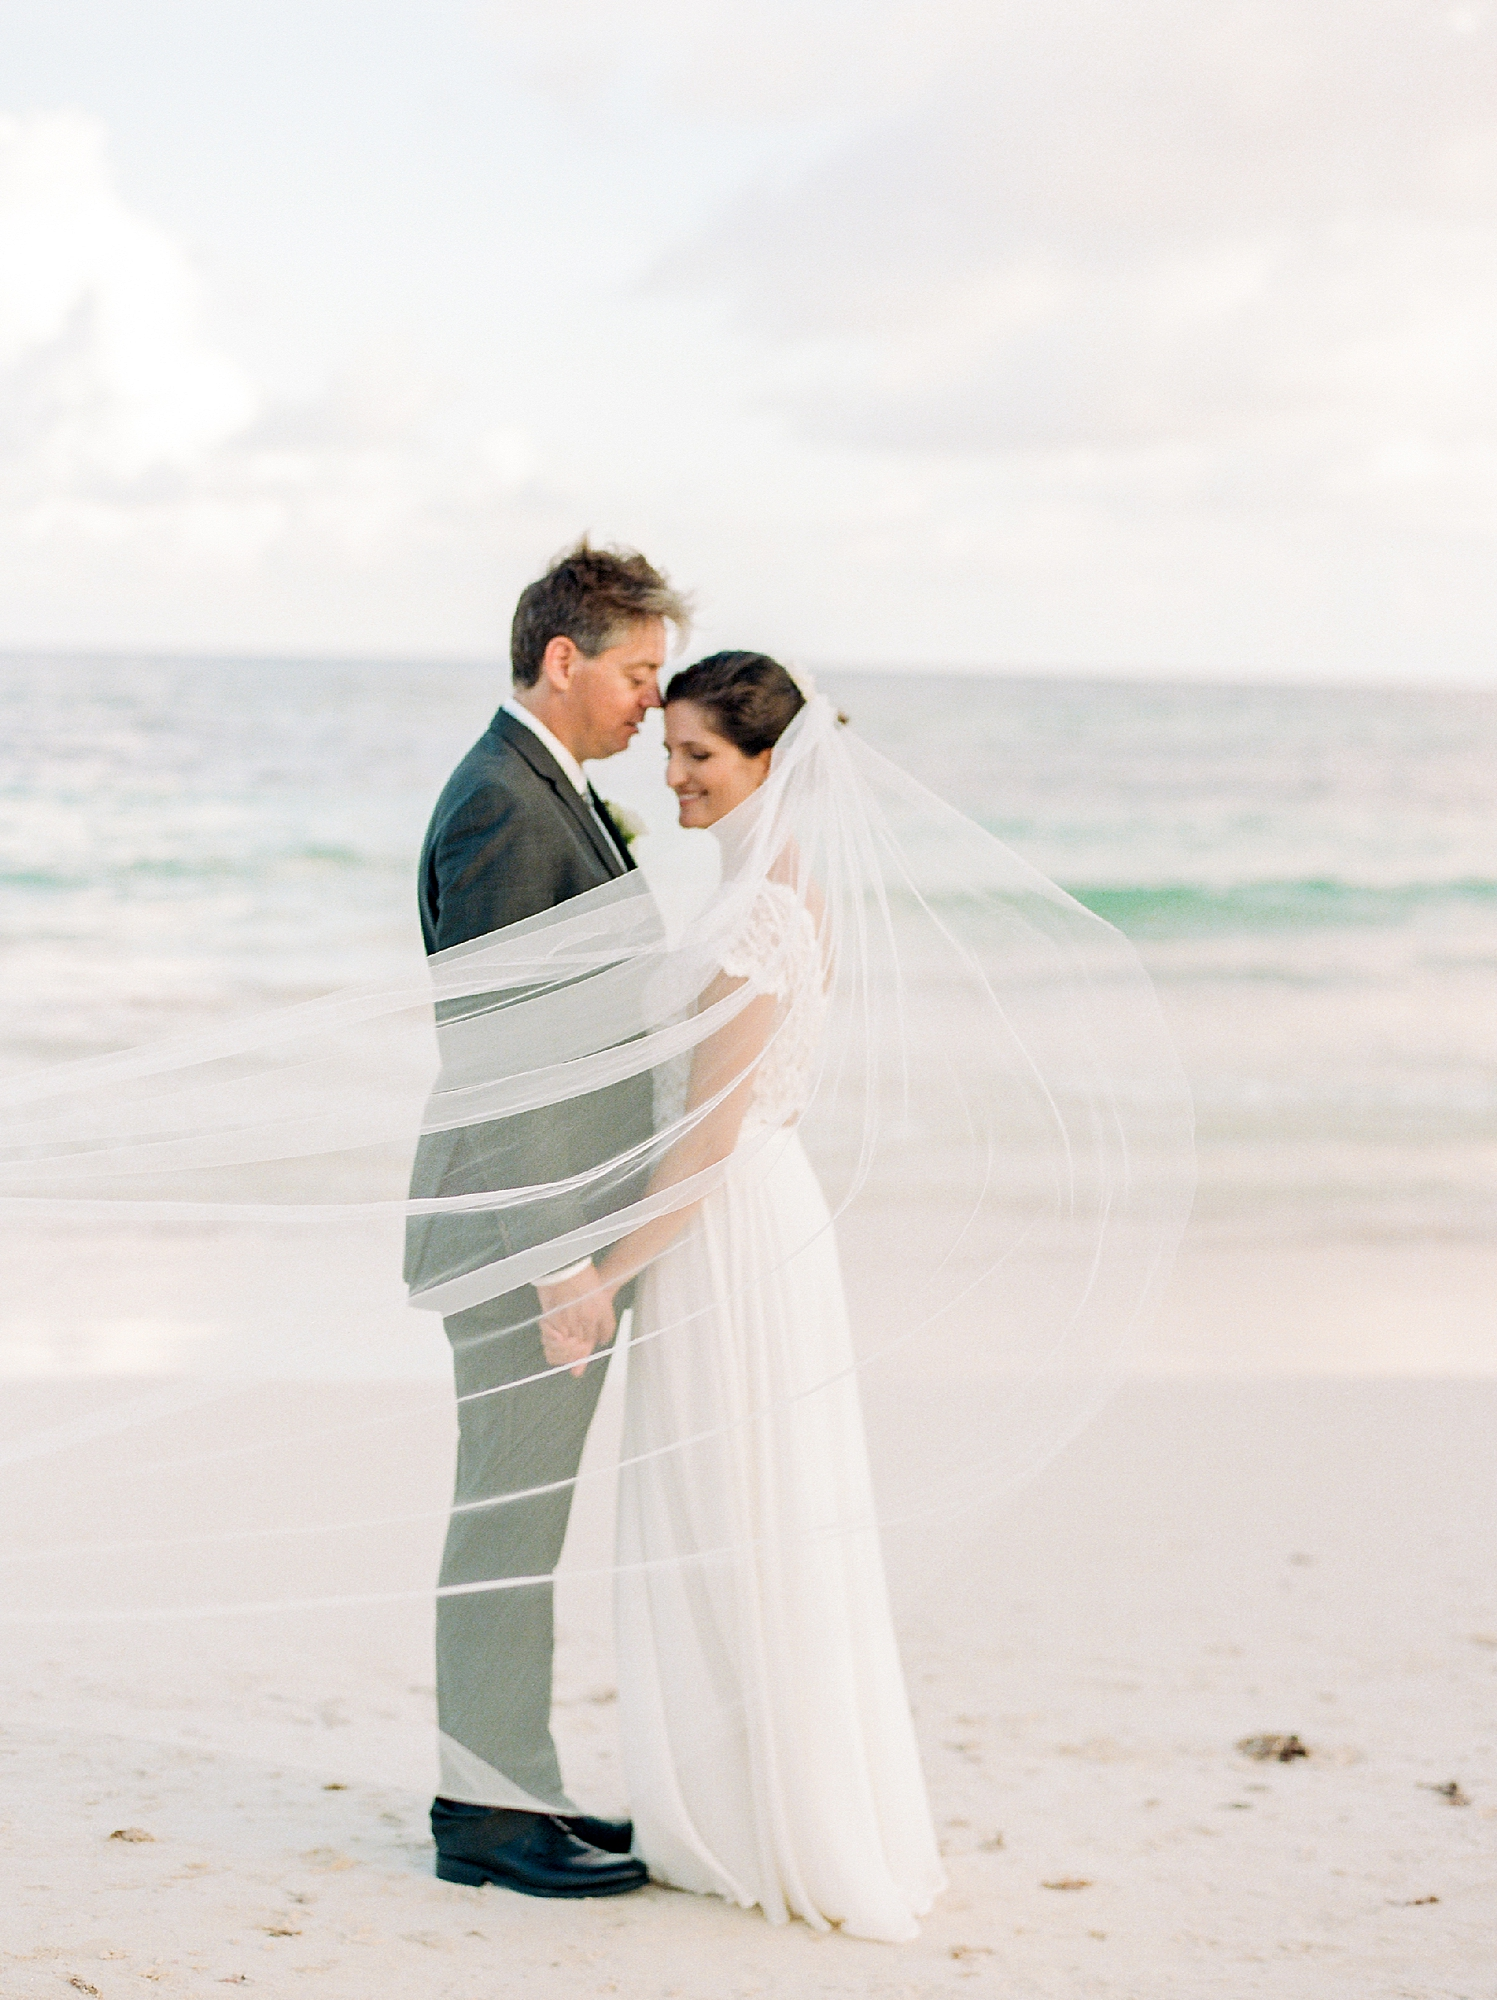 Stylish and Candid Destination Film Wedding Photography in Tulum Mexico by Magdalena Studios 0025